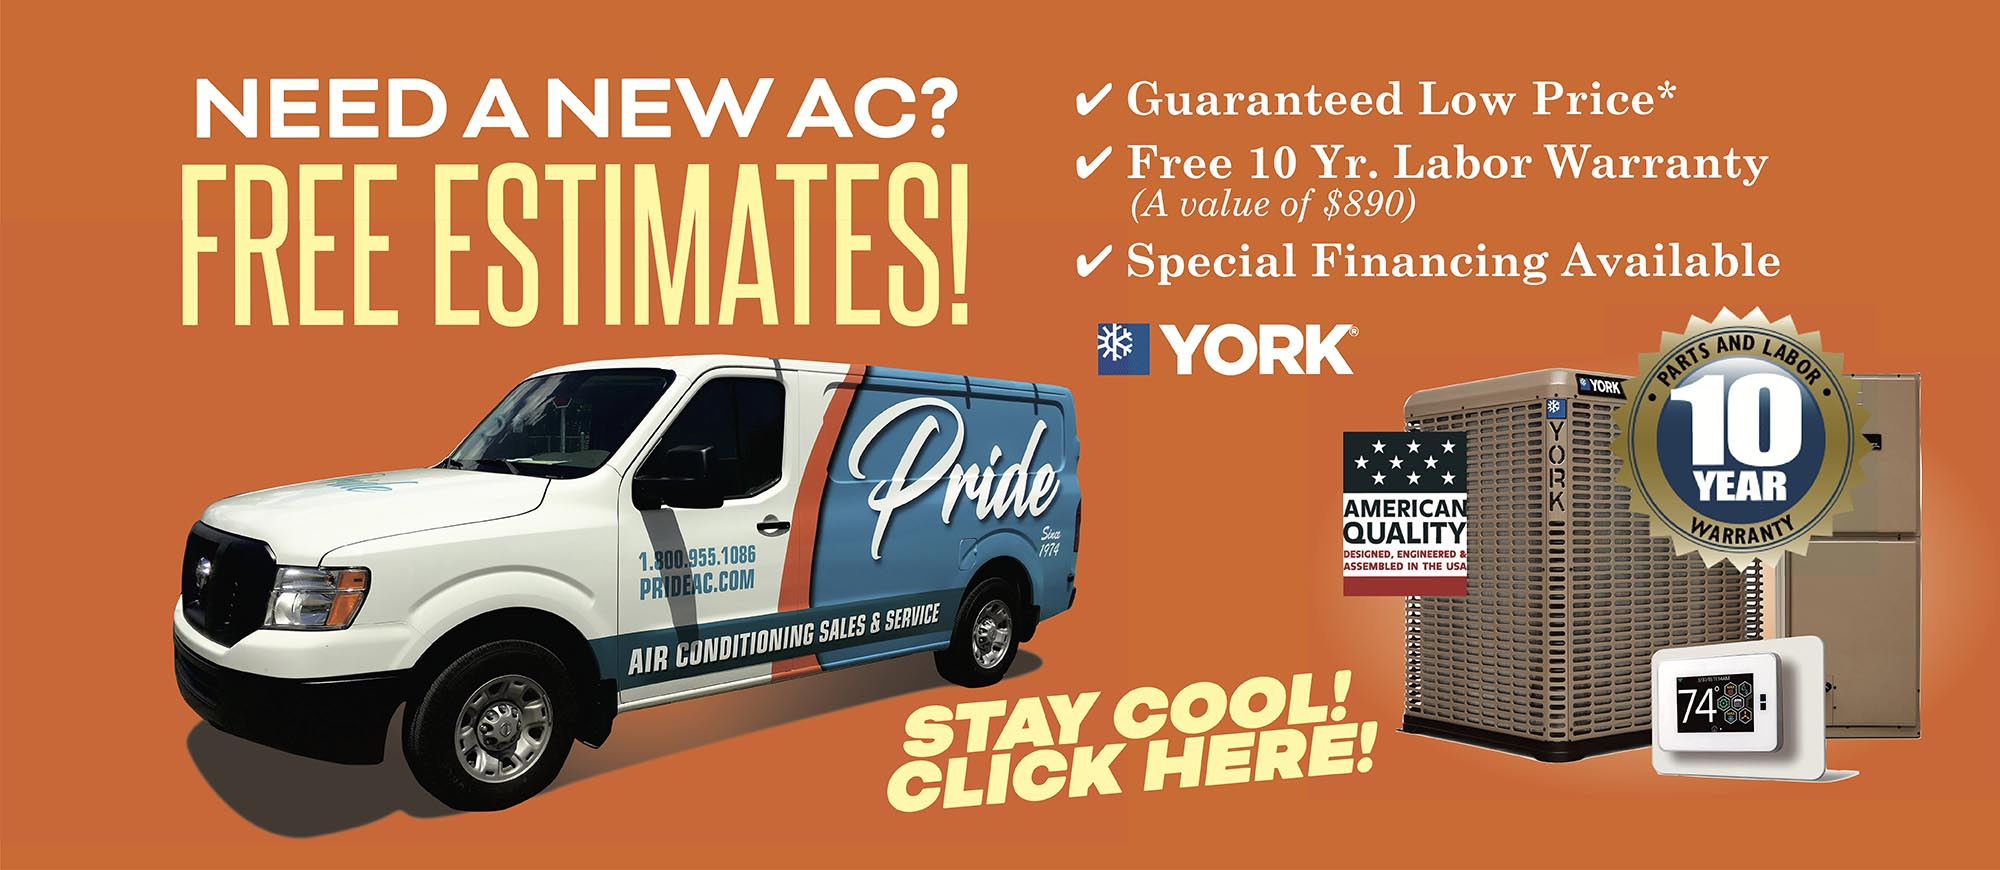 For a AC installation or repair estimate in Surnise FL, call today for a quote!